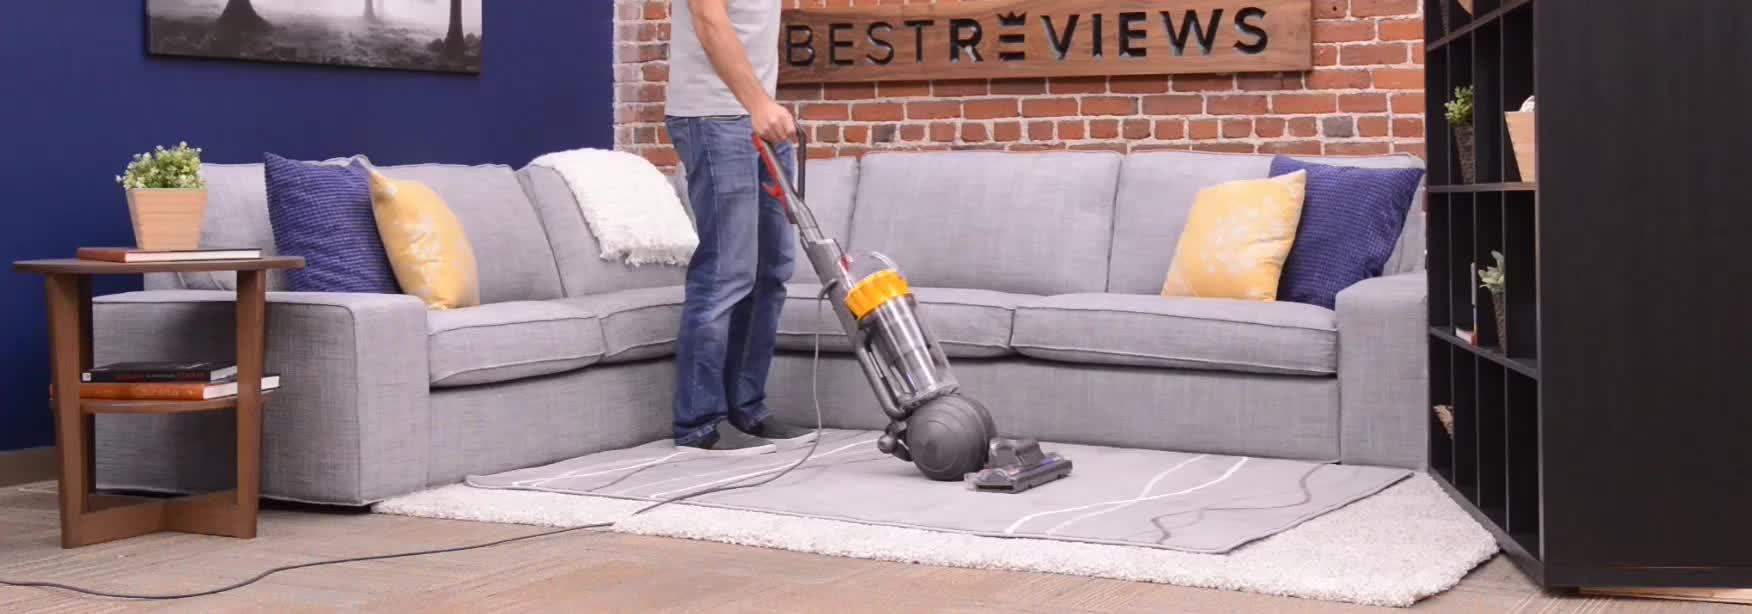 4 best vacuum cleaners mar 2018 bestreviews dailygadgetfo Image collections